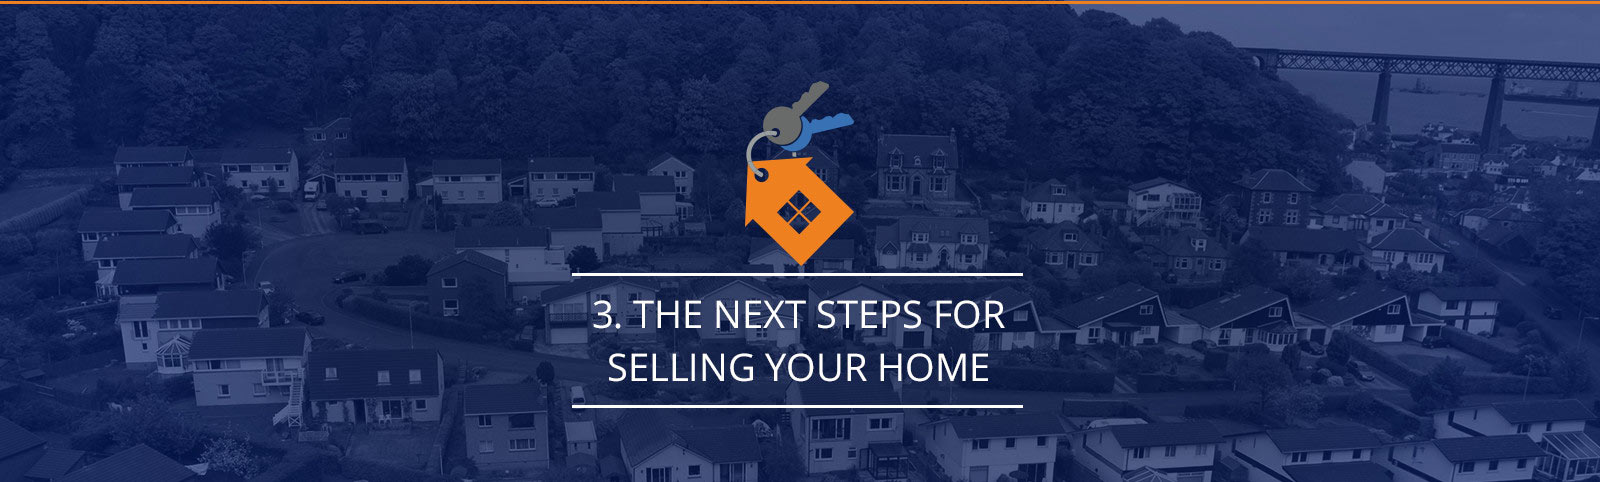 next steps for selling your home